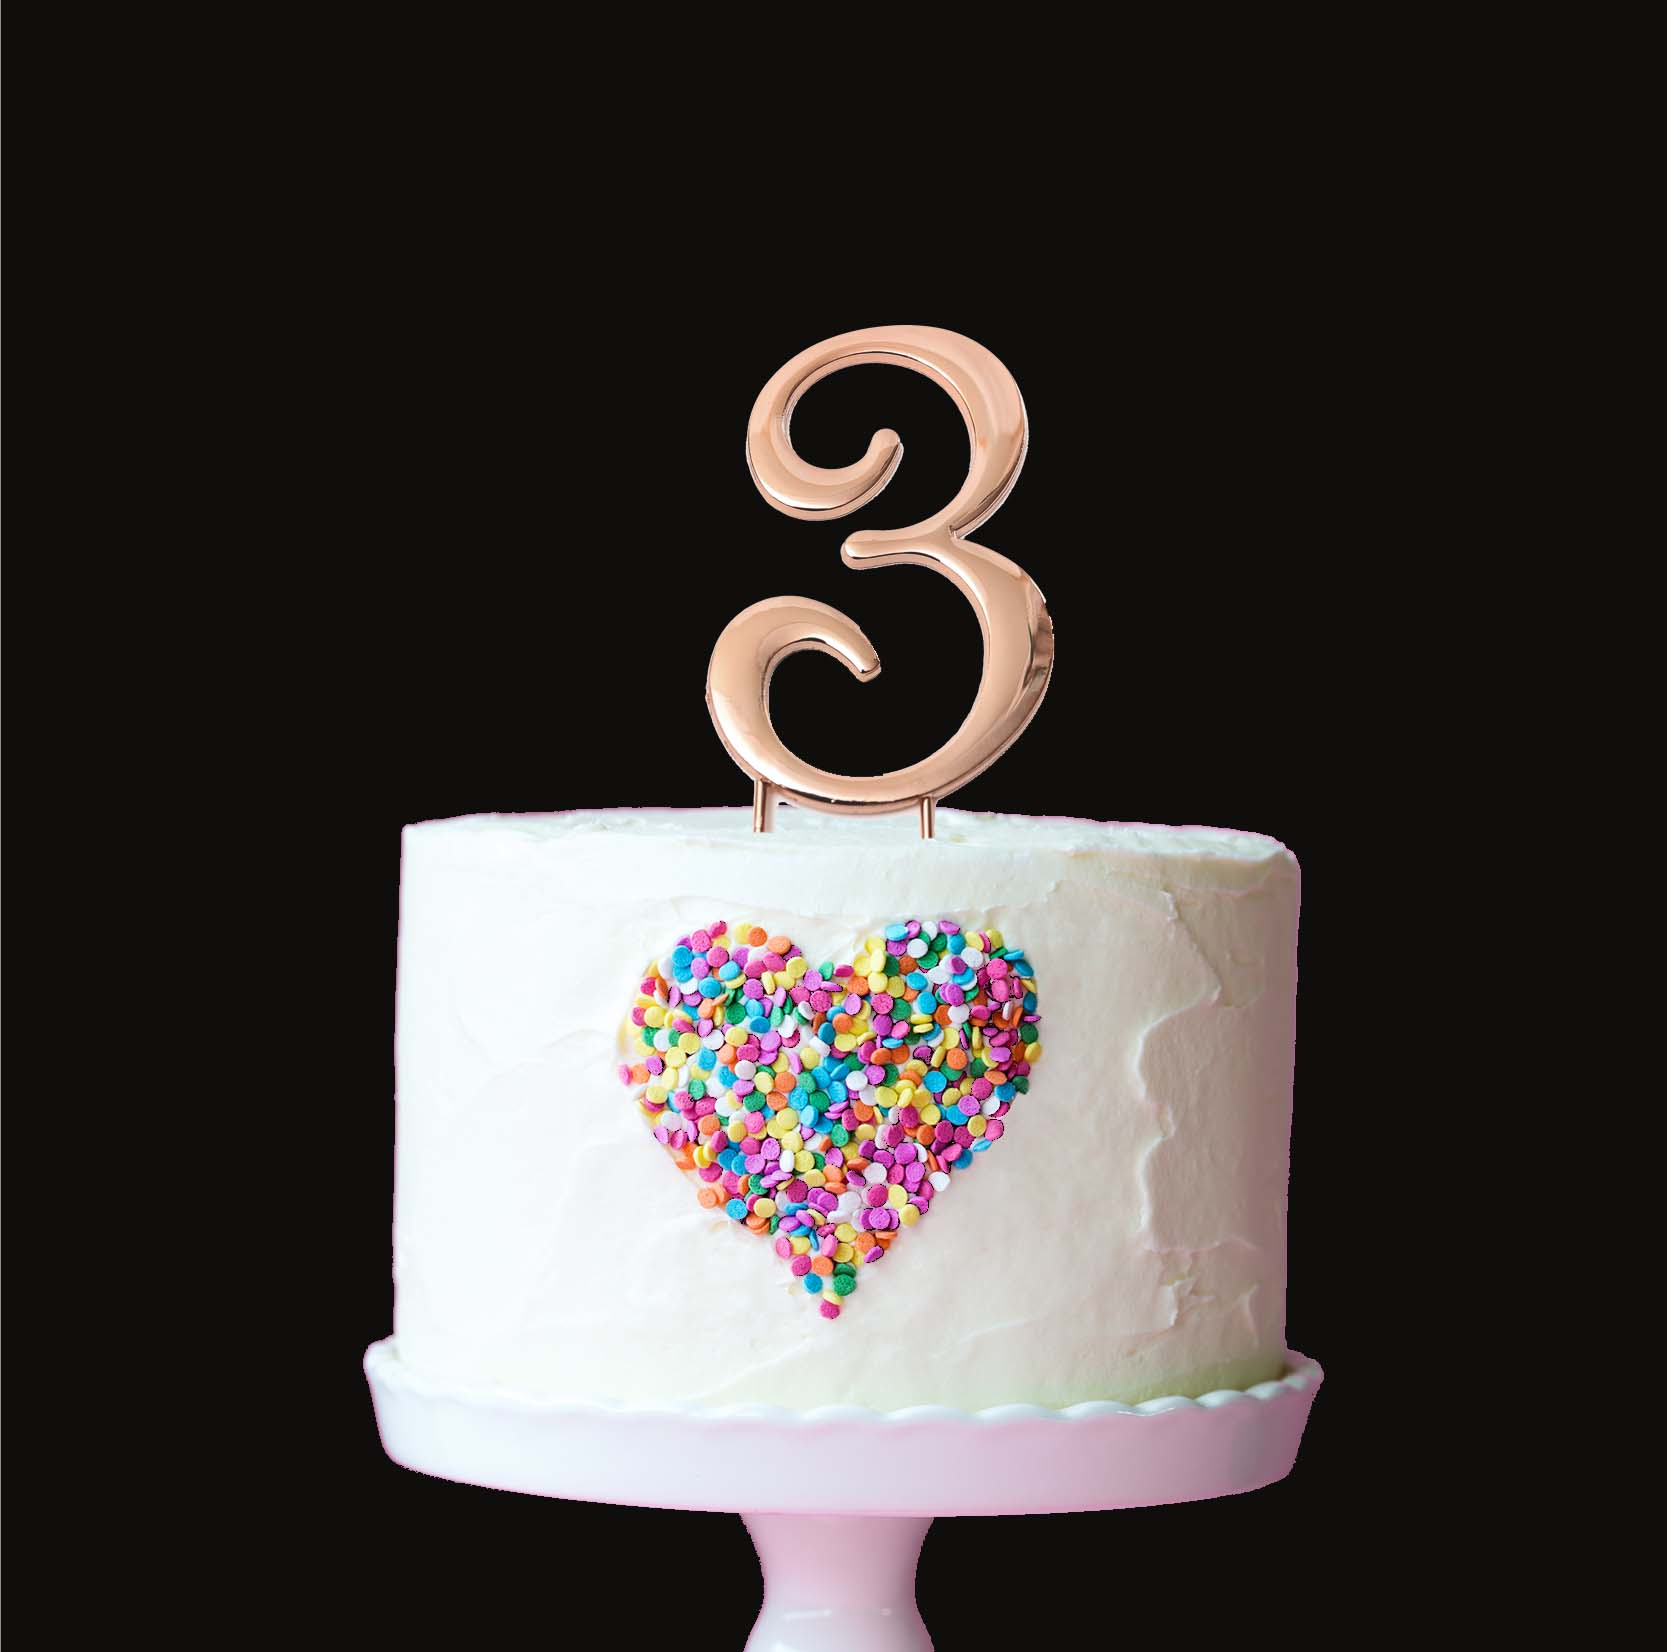 ROSE GOLD Cake Topper (7cm) - NUMBER 3